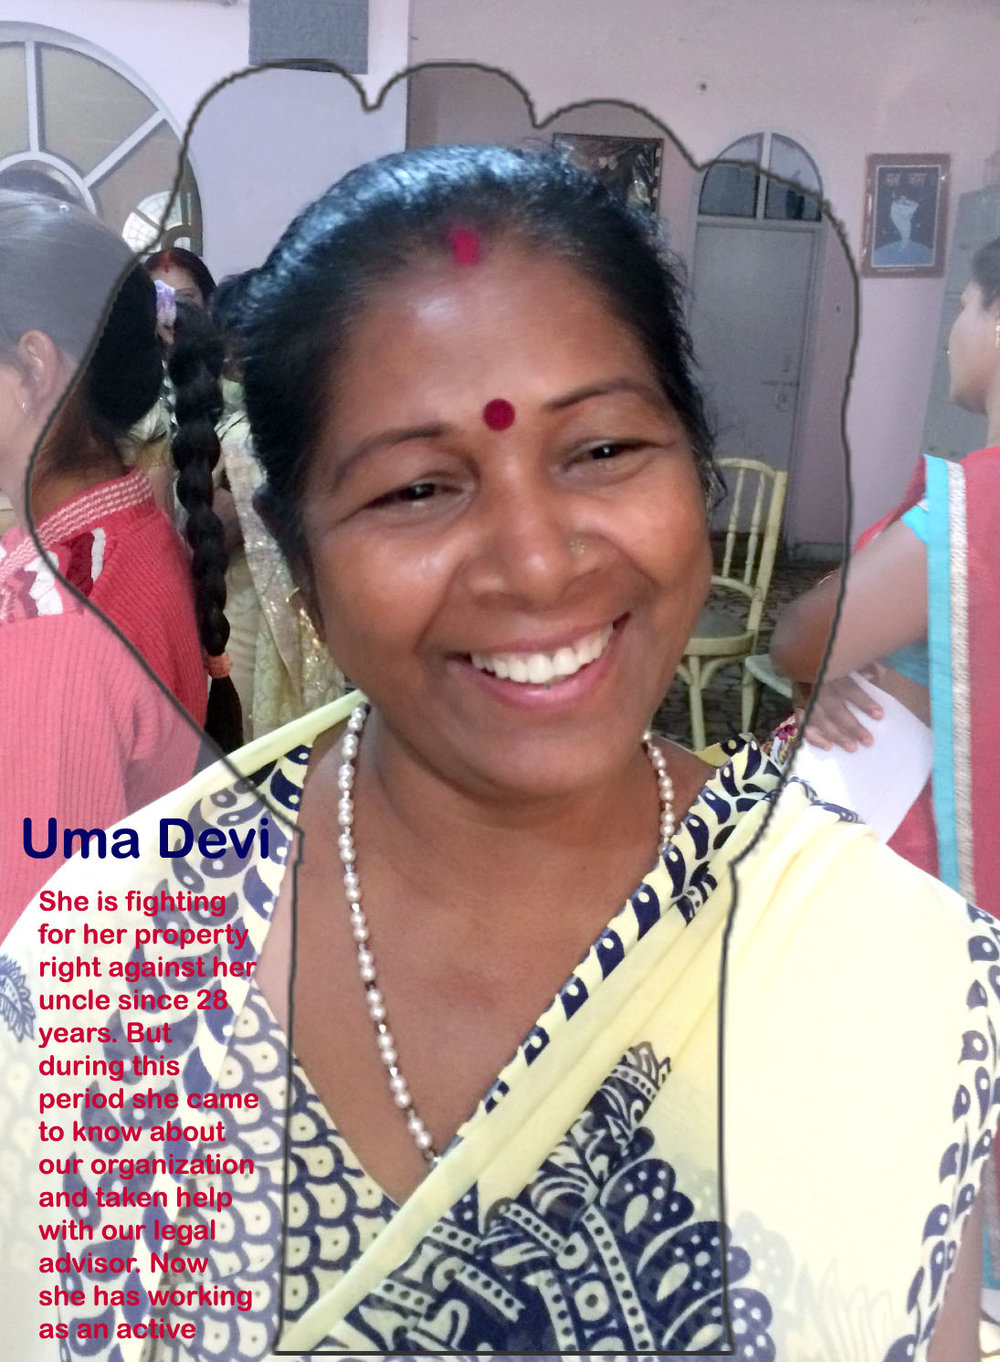 Uma devi women human right defender--.jpg